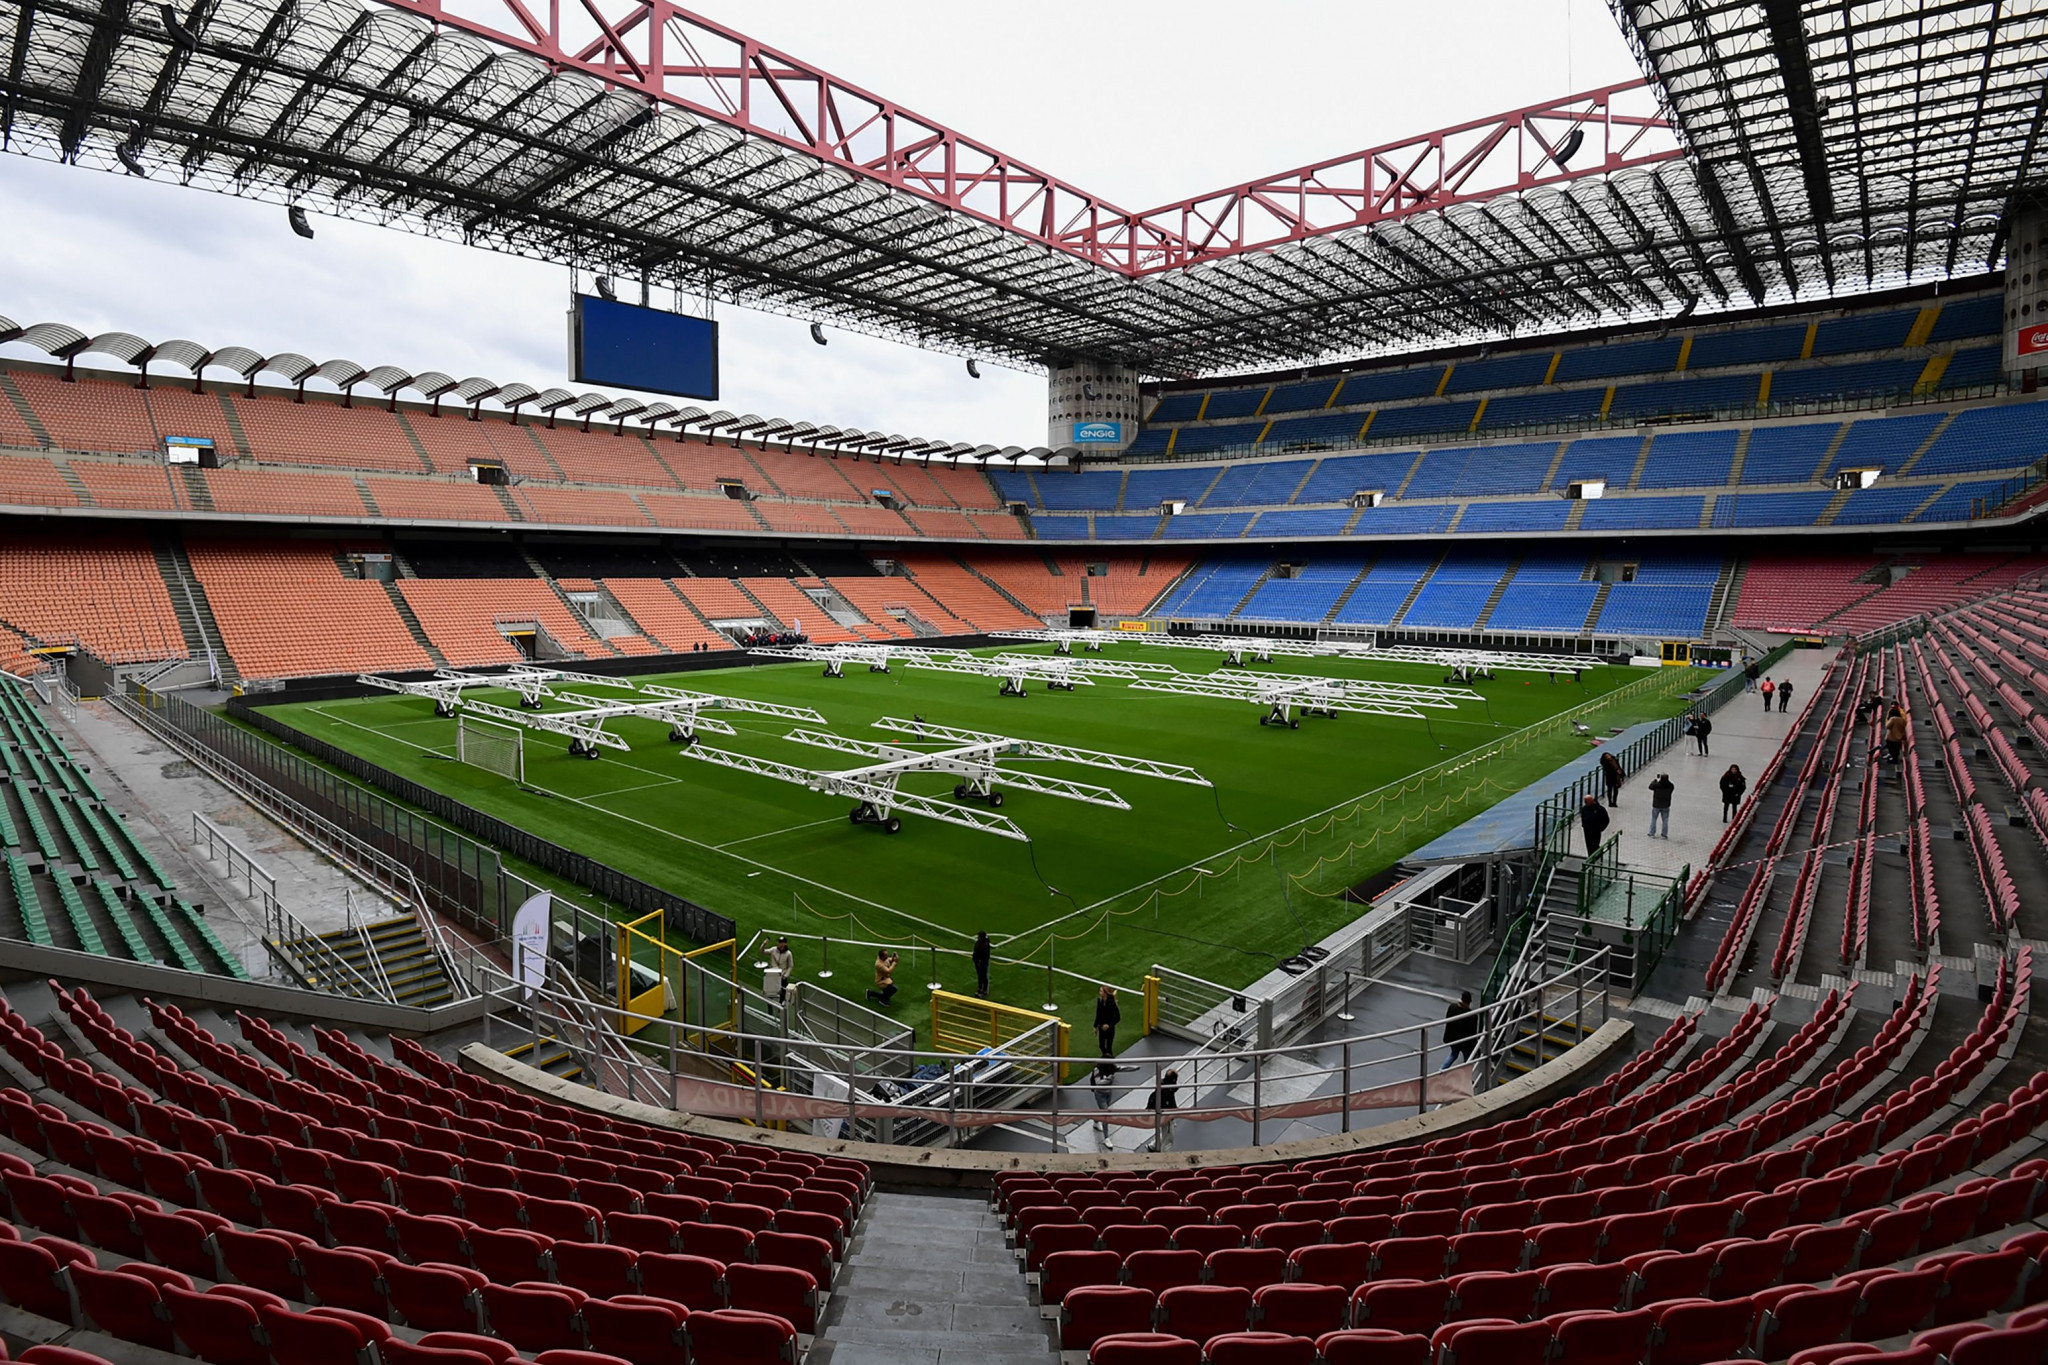 San Siro is due to host the Opening Ceremony if Milan Cortina is awarded the 2026 Winter Olympic and Paralympic Games ©Getty Images